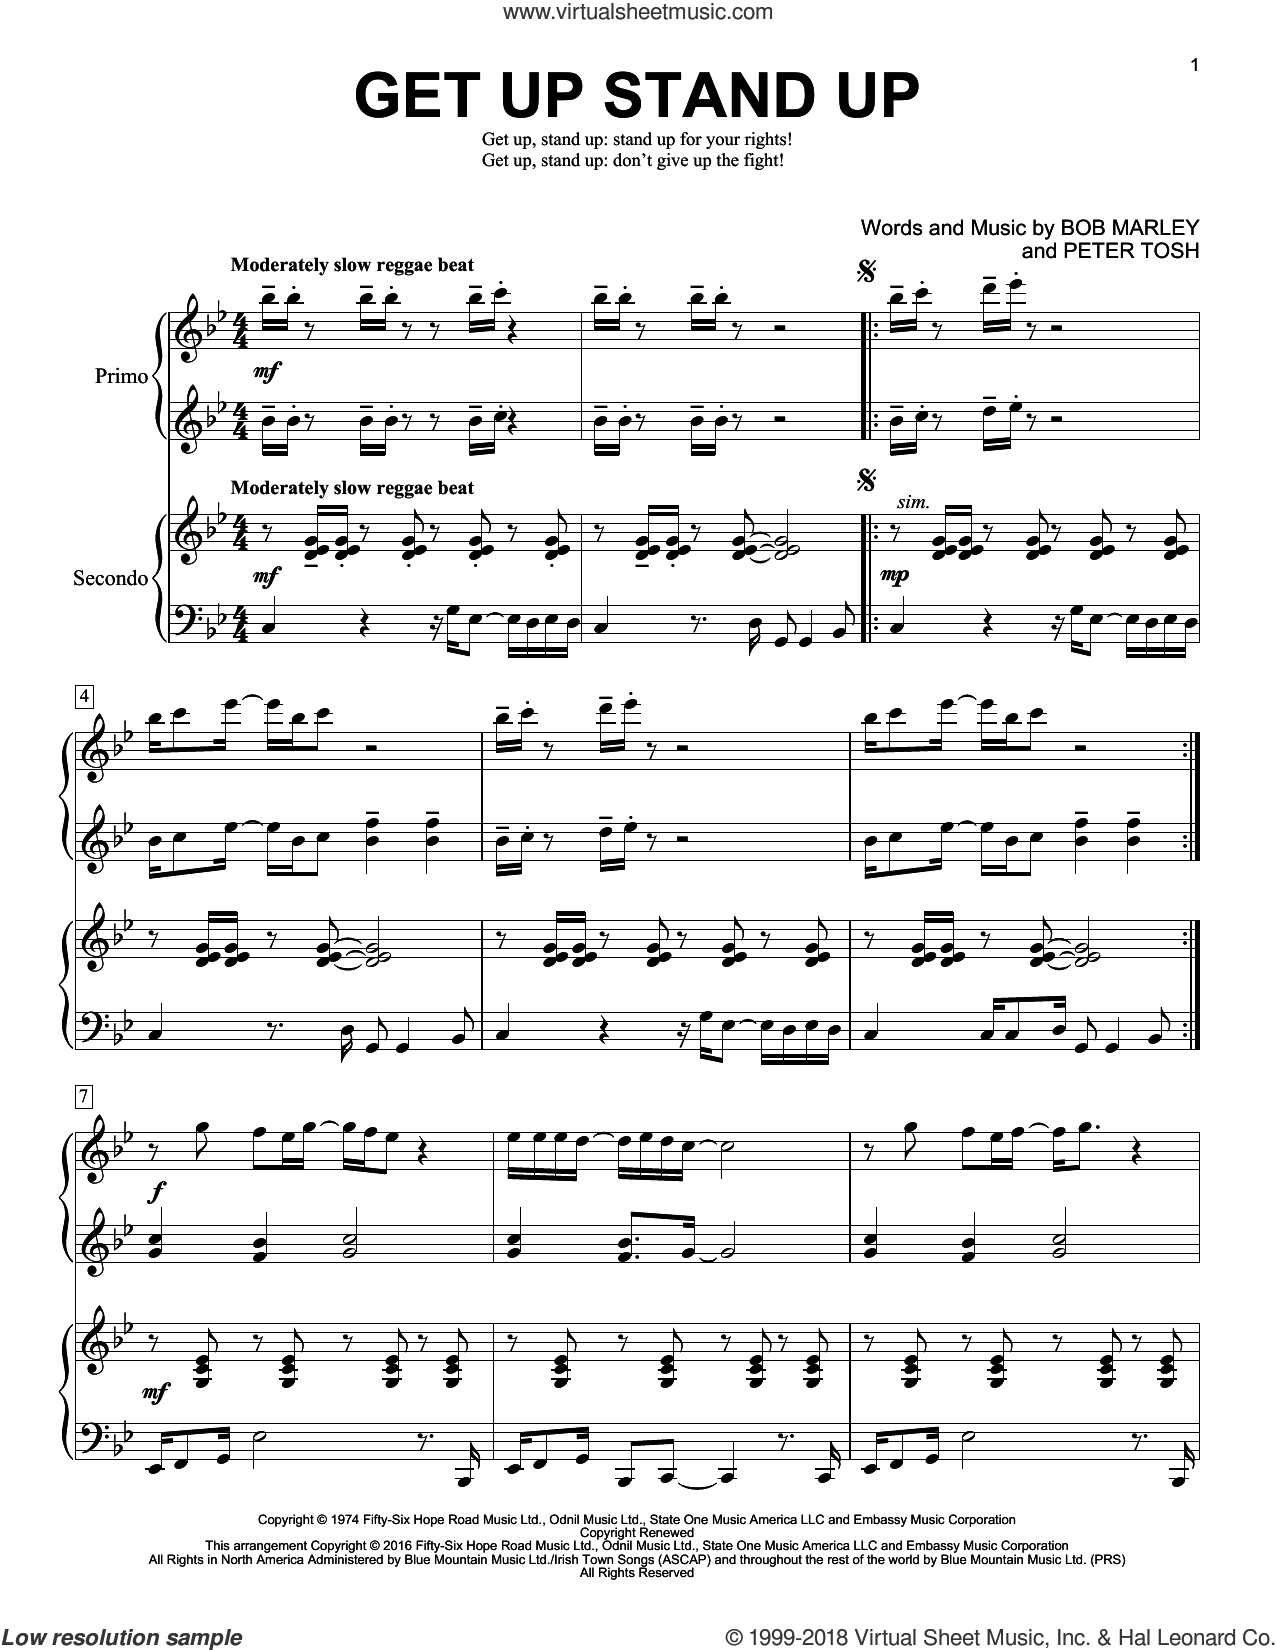 Get Up Stand Up sheet music for piano four hands by Bob Marley, Brent Edstrom and Peter Tosh, intermediate skill level